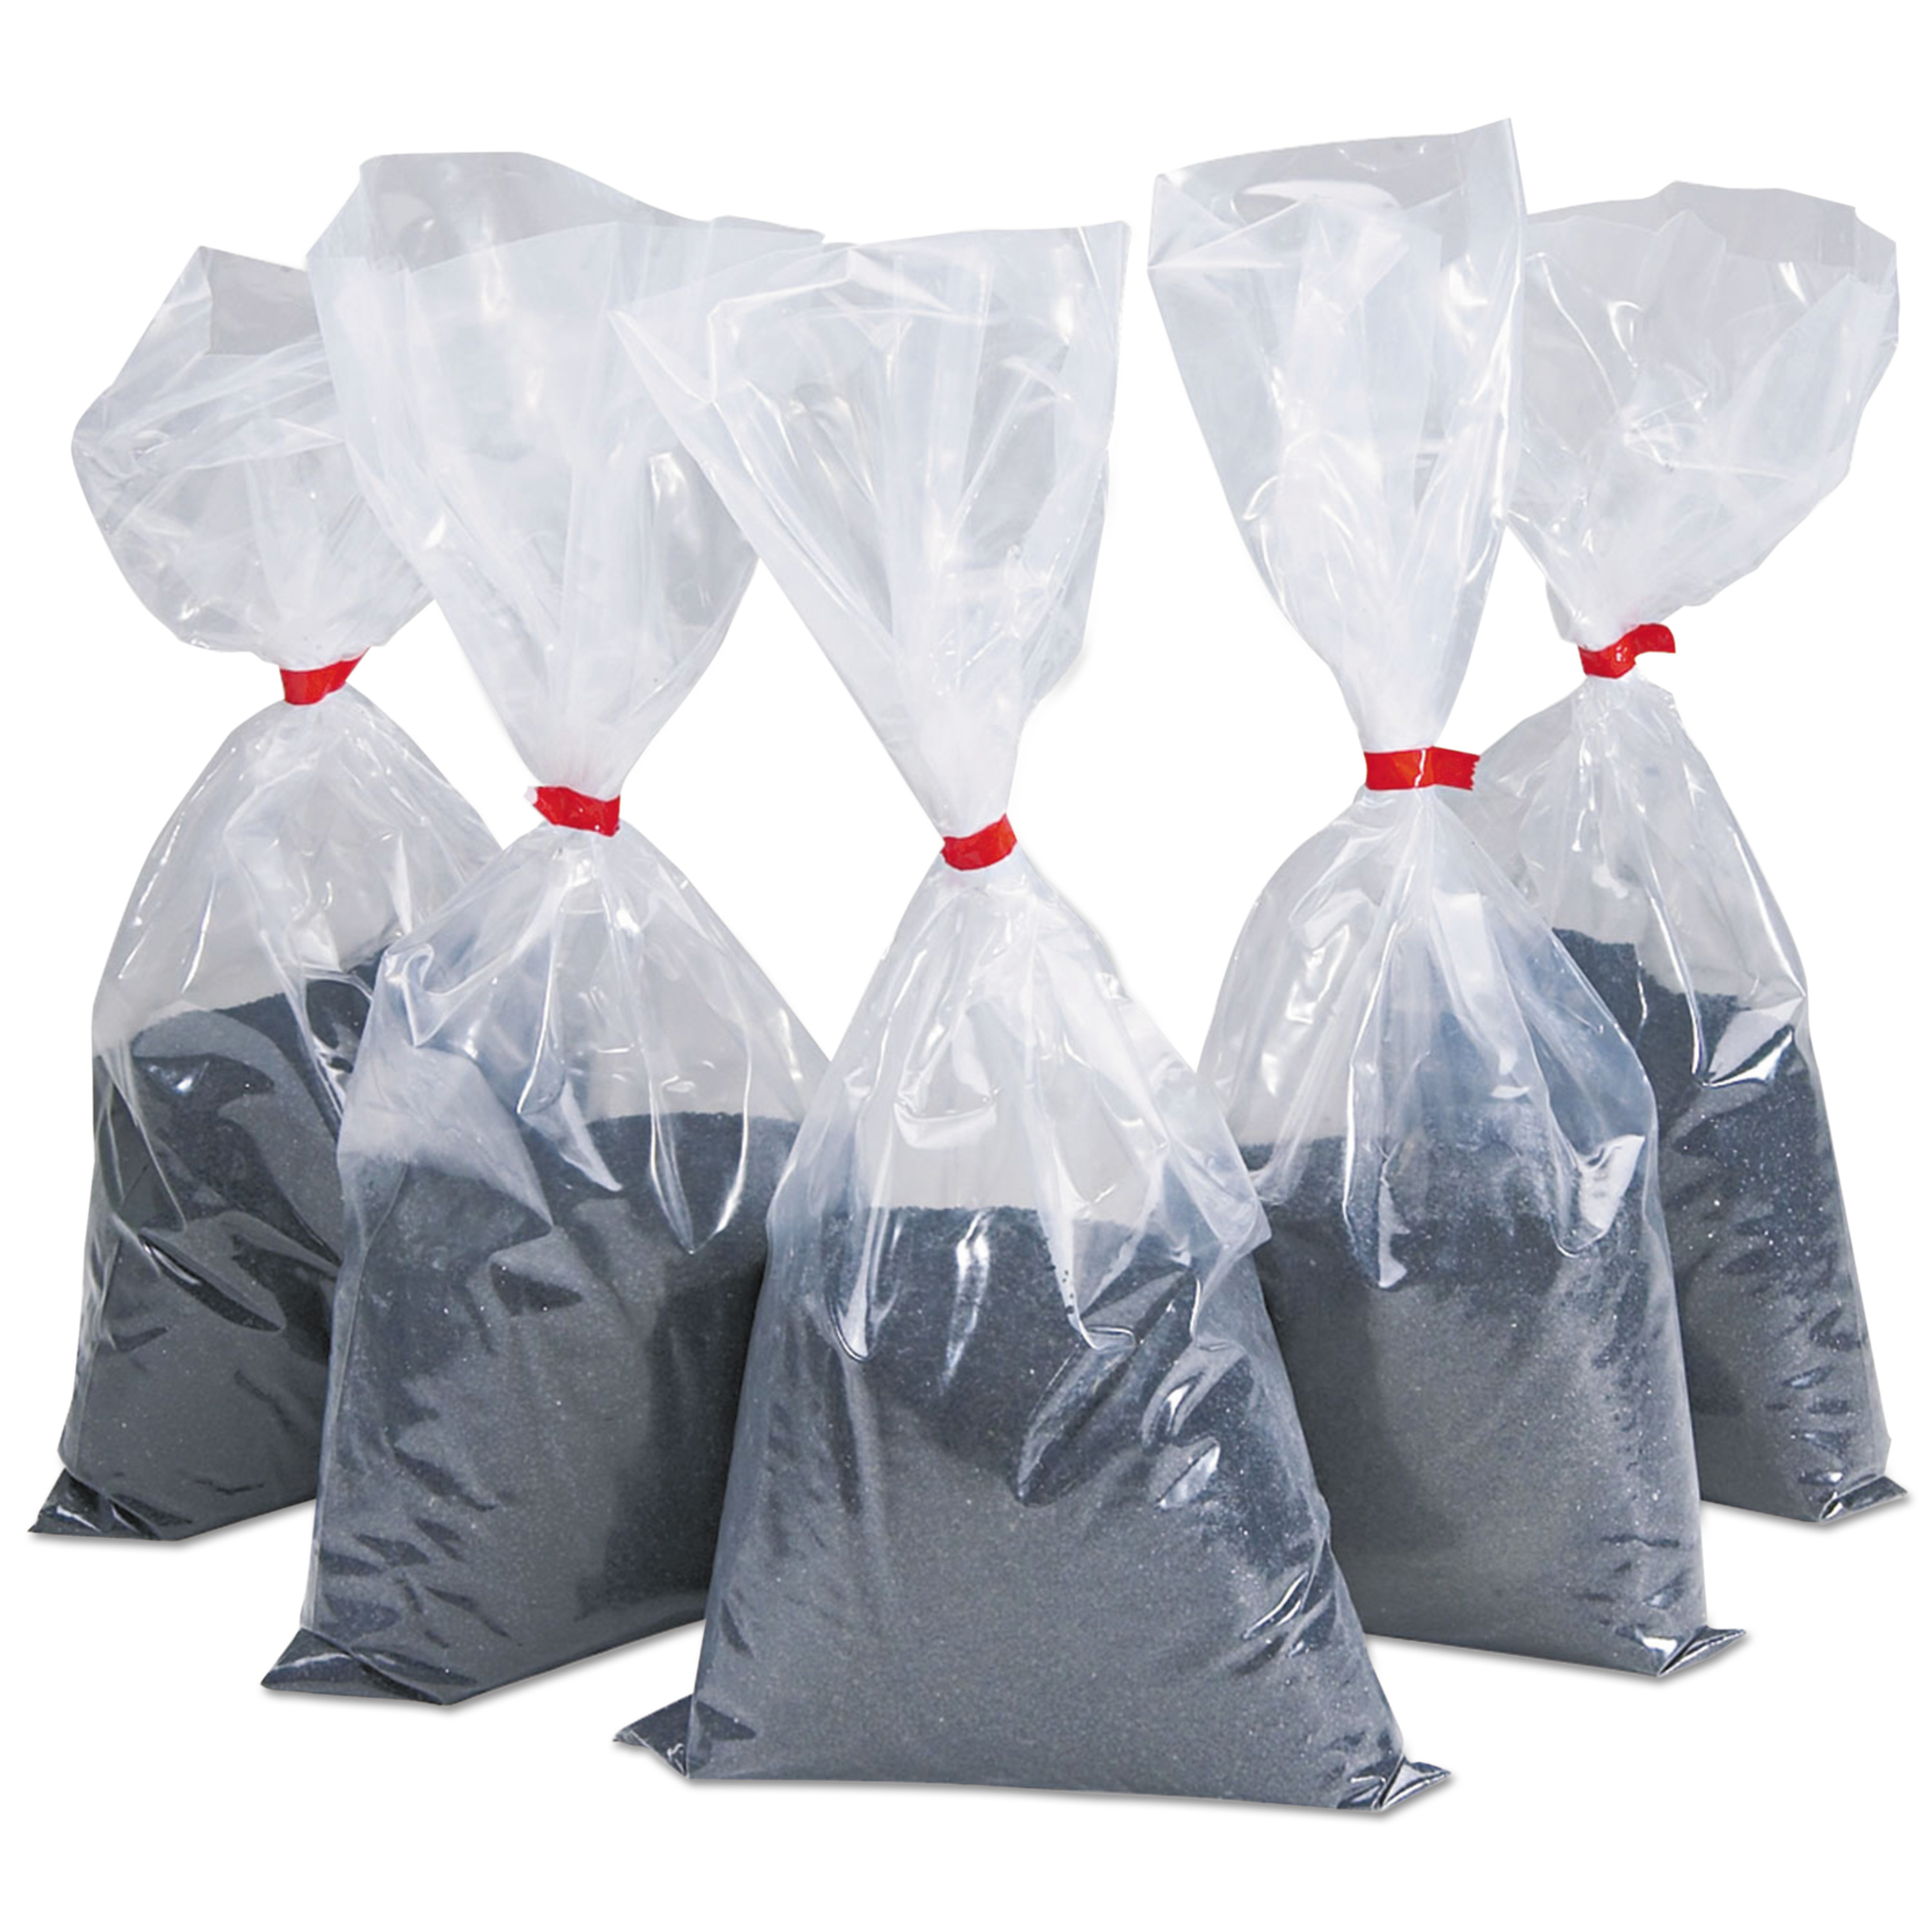 Rubbermaid Commercial Urn Sand Bag, Black, 1 Pack (Quantity)